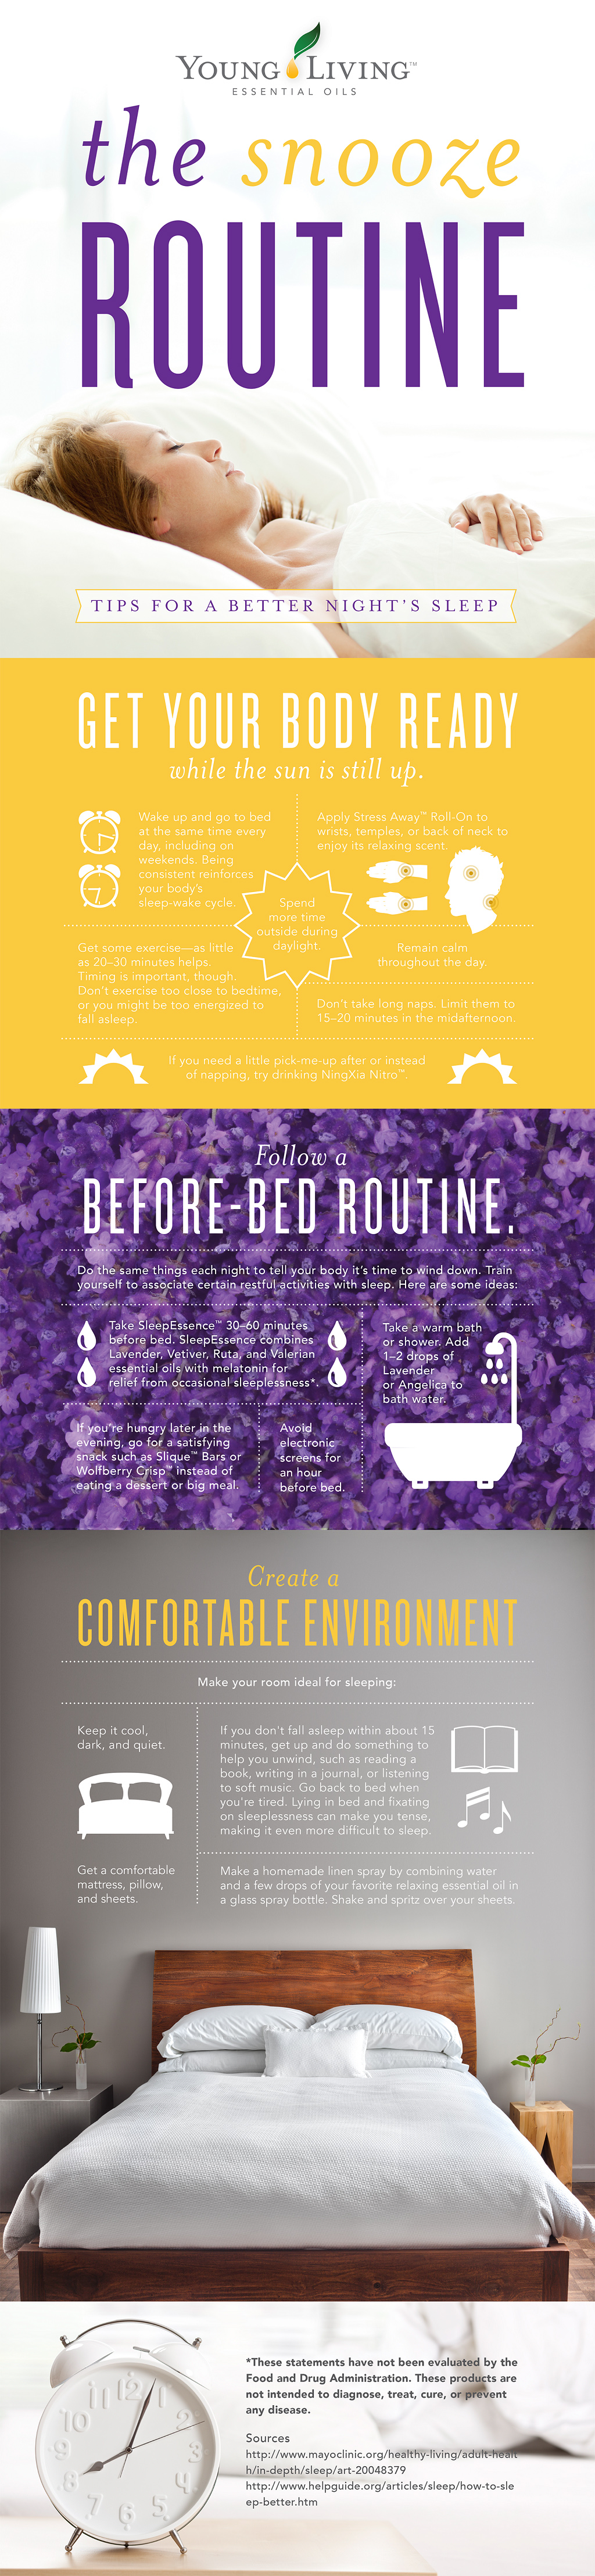 Get a better night's sleep for Yu